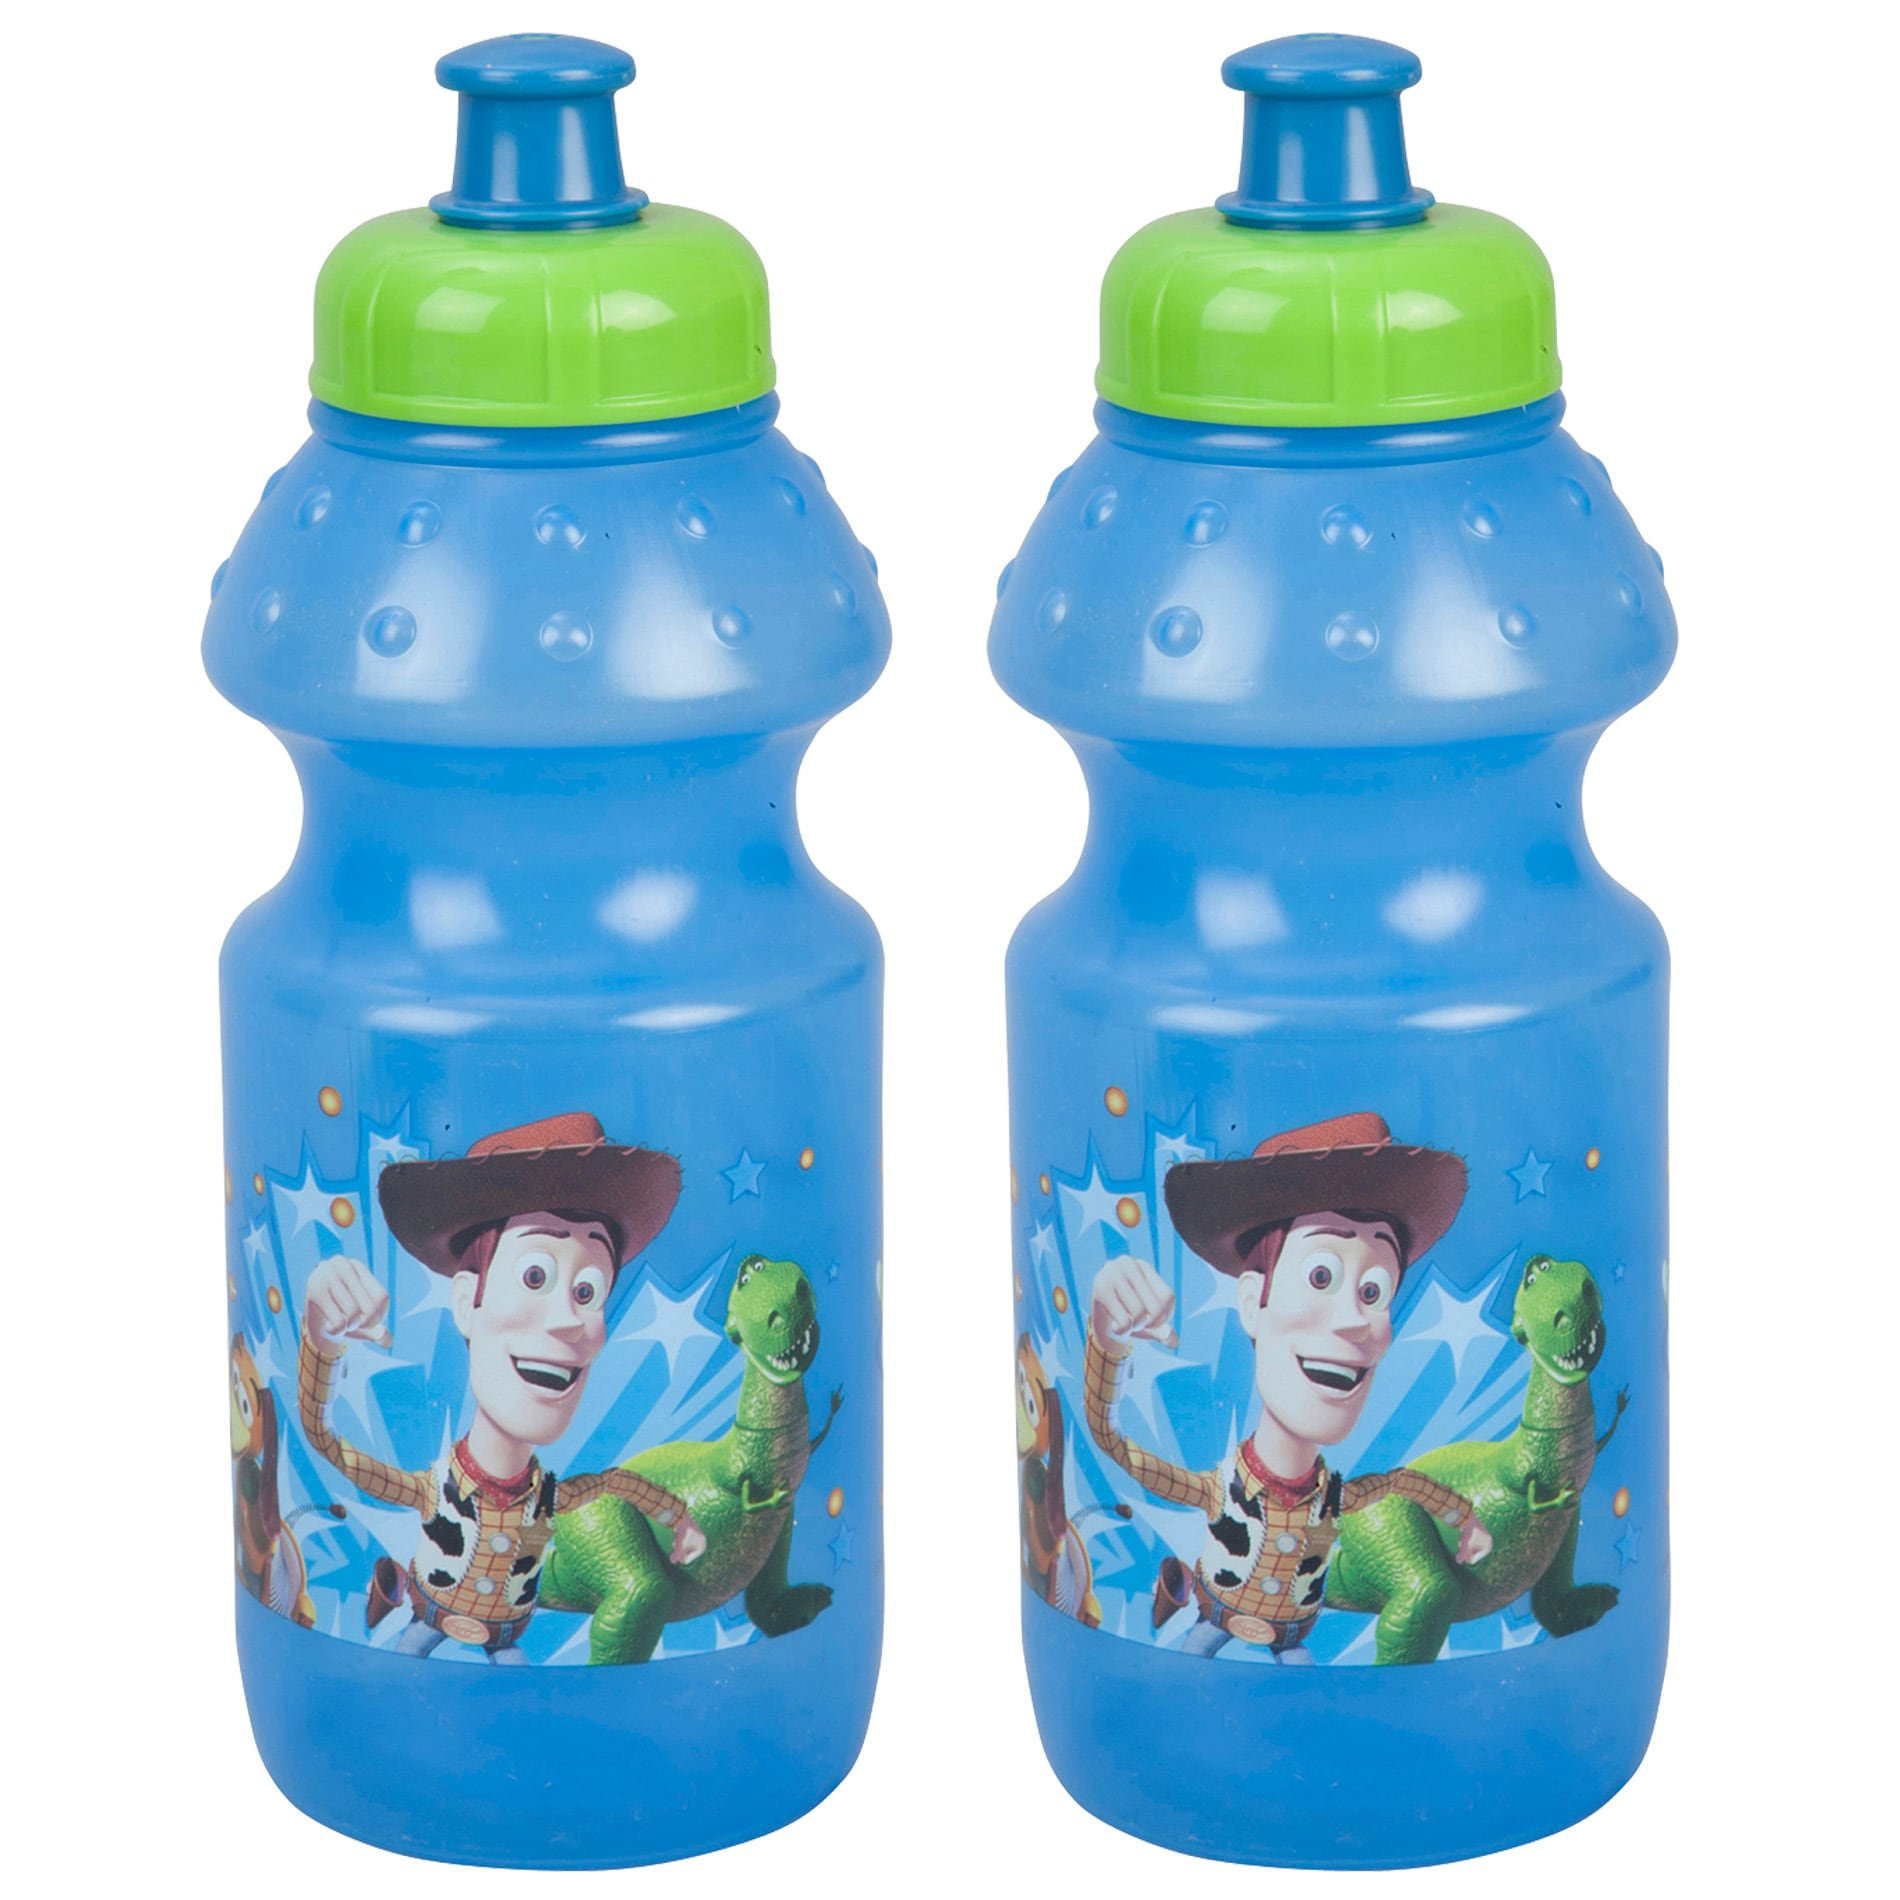 Toy Story 15-ounce Sports Bottles (Set of 2)